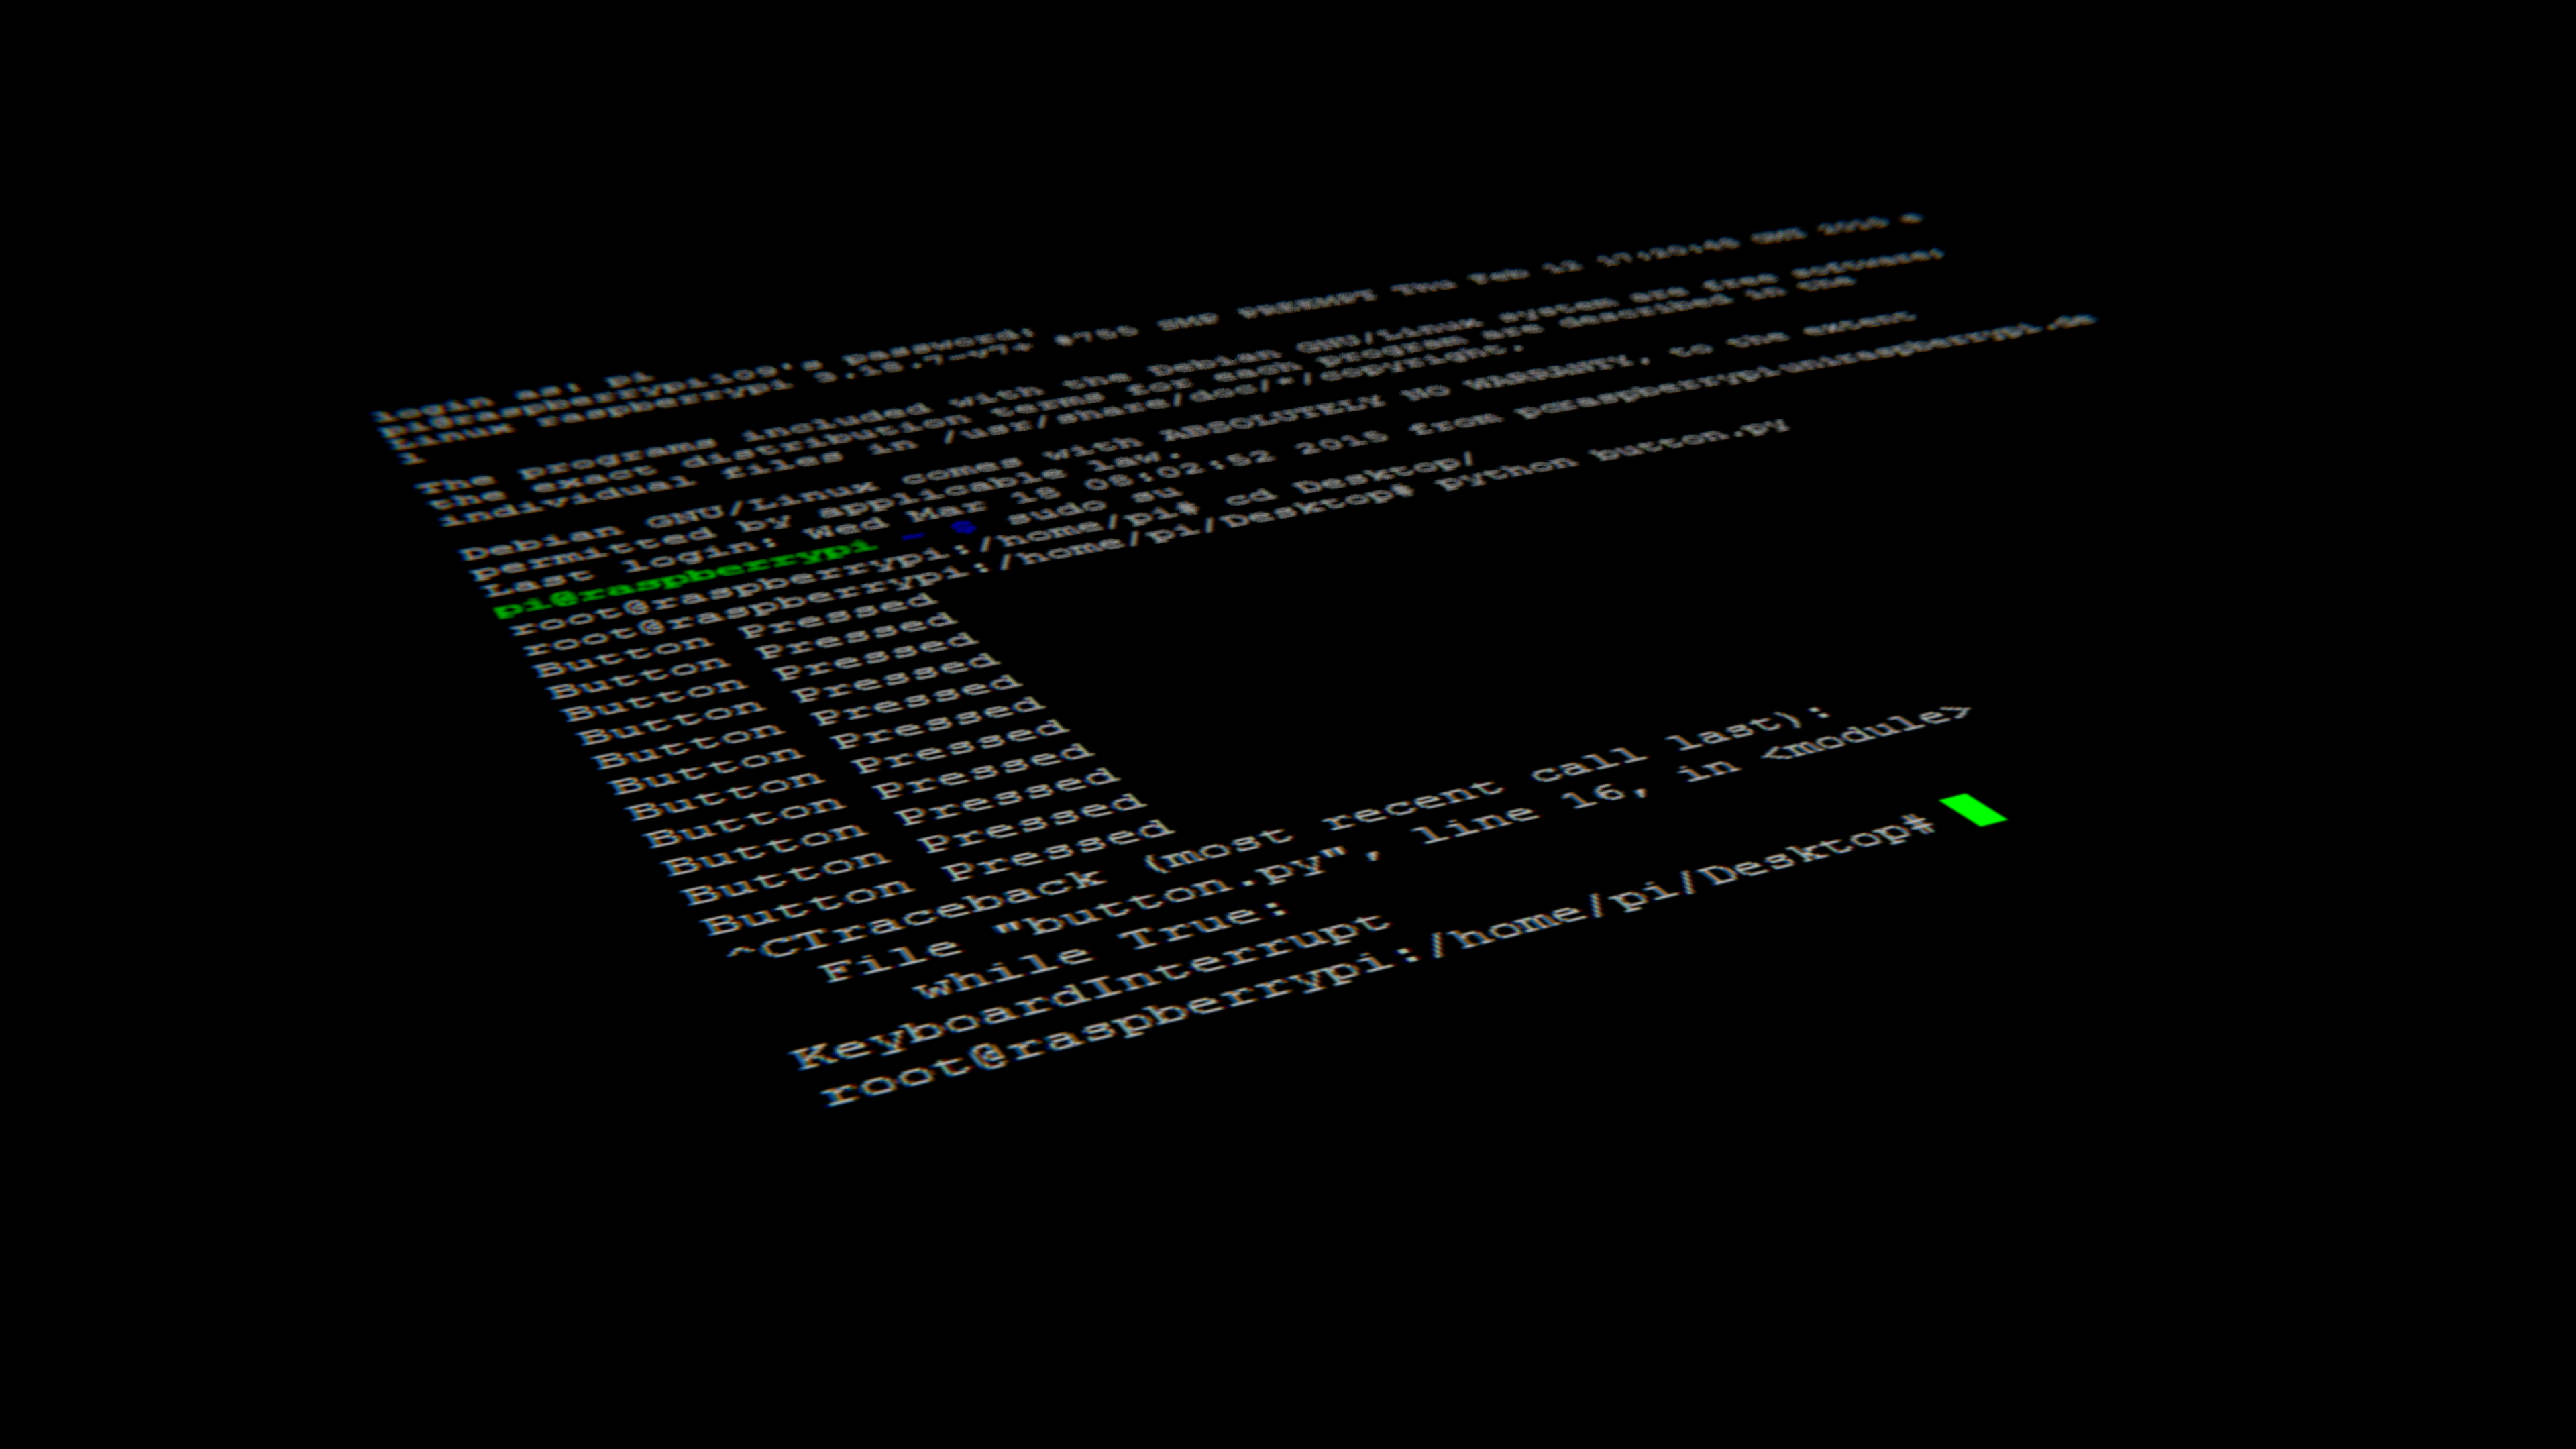 Linux terminal commands hd computer k wallpapers